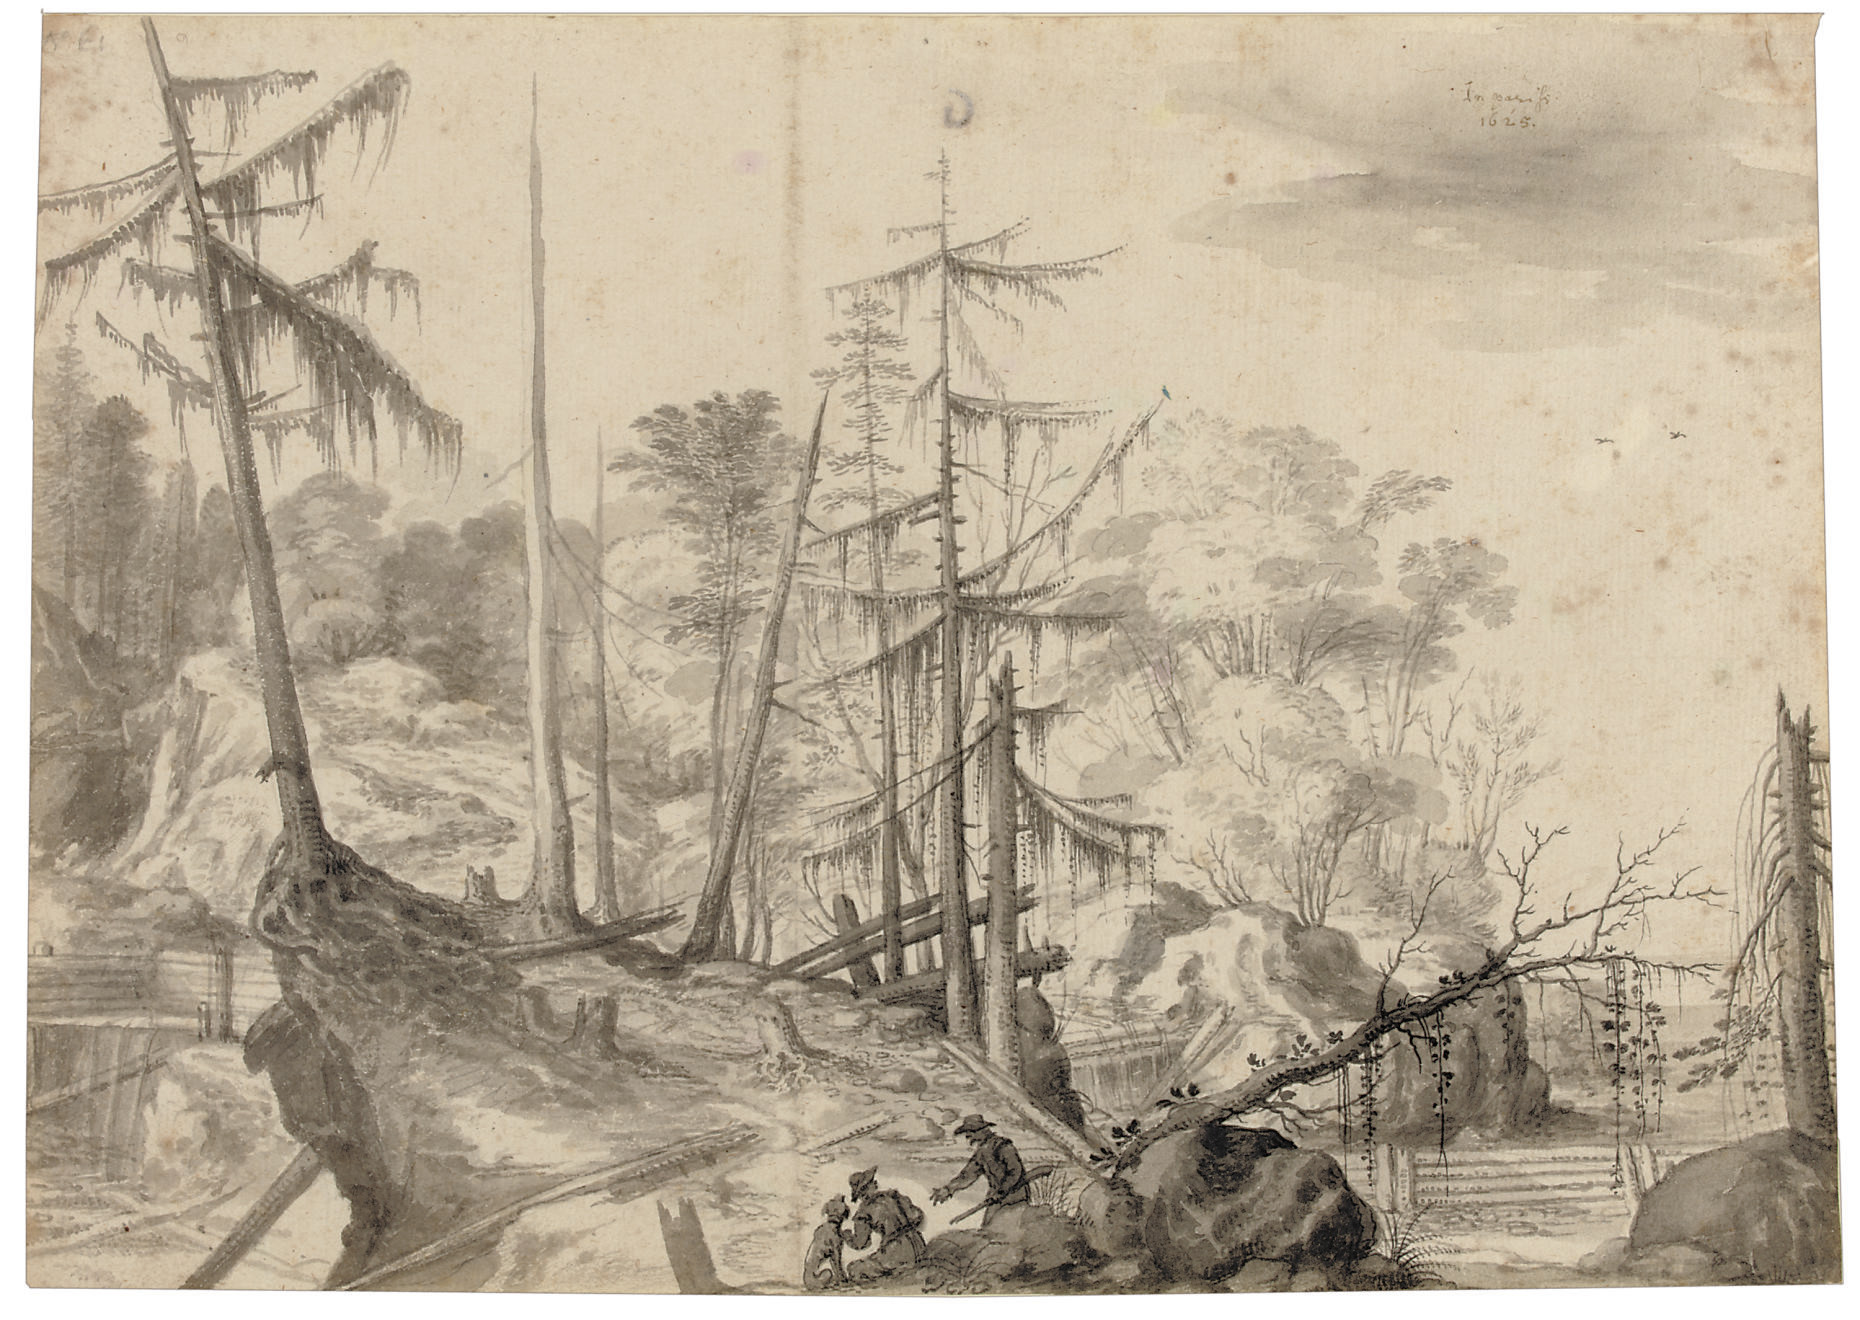 A rocky landscape with two huntsmen and a dog by fallen fir trees